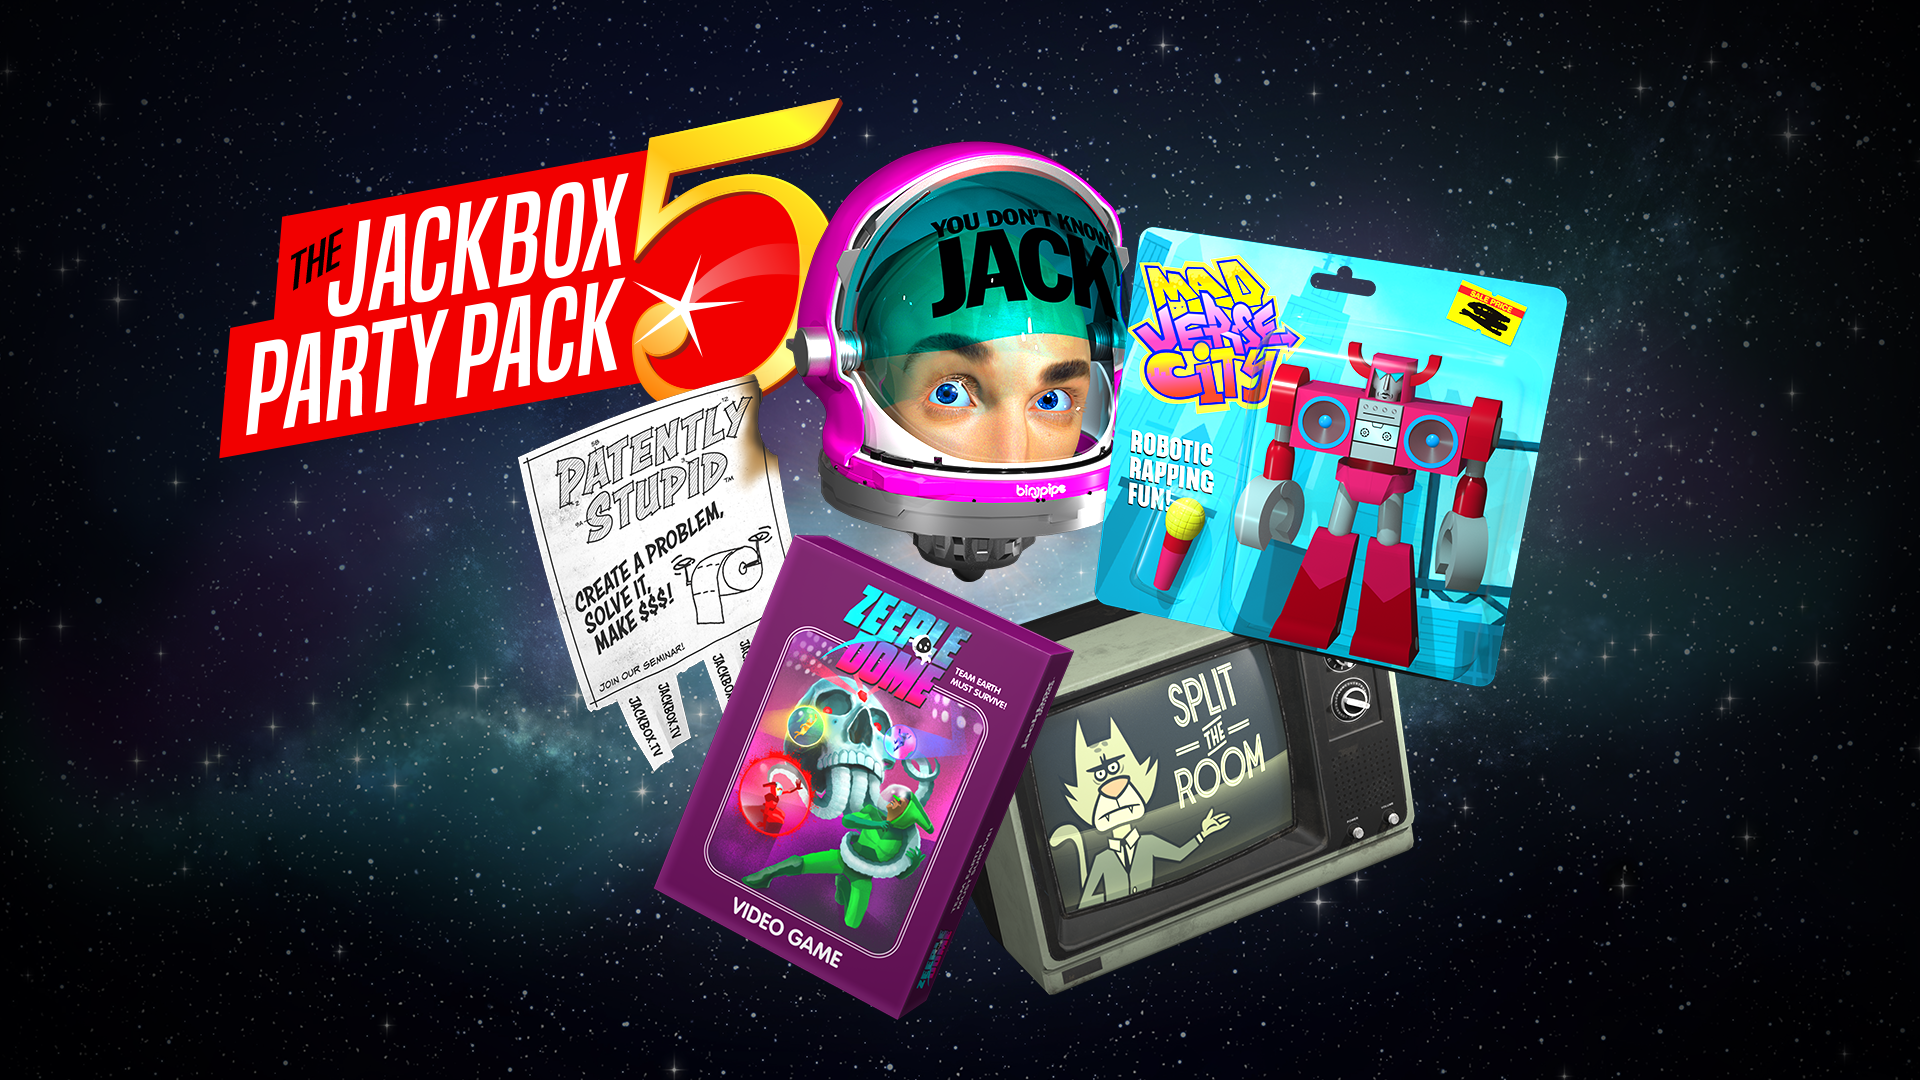 Zeeple Dome: Life Saver achievement for The Jackbox Party Pack 5 on Xbox One